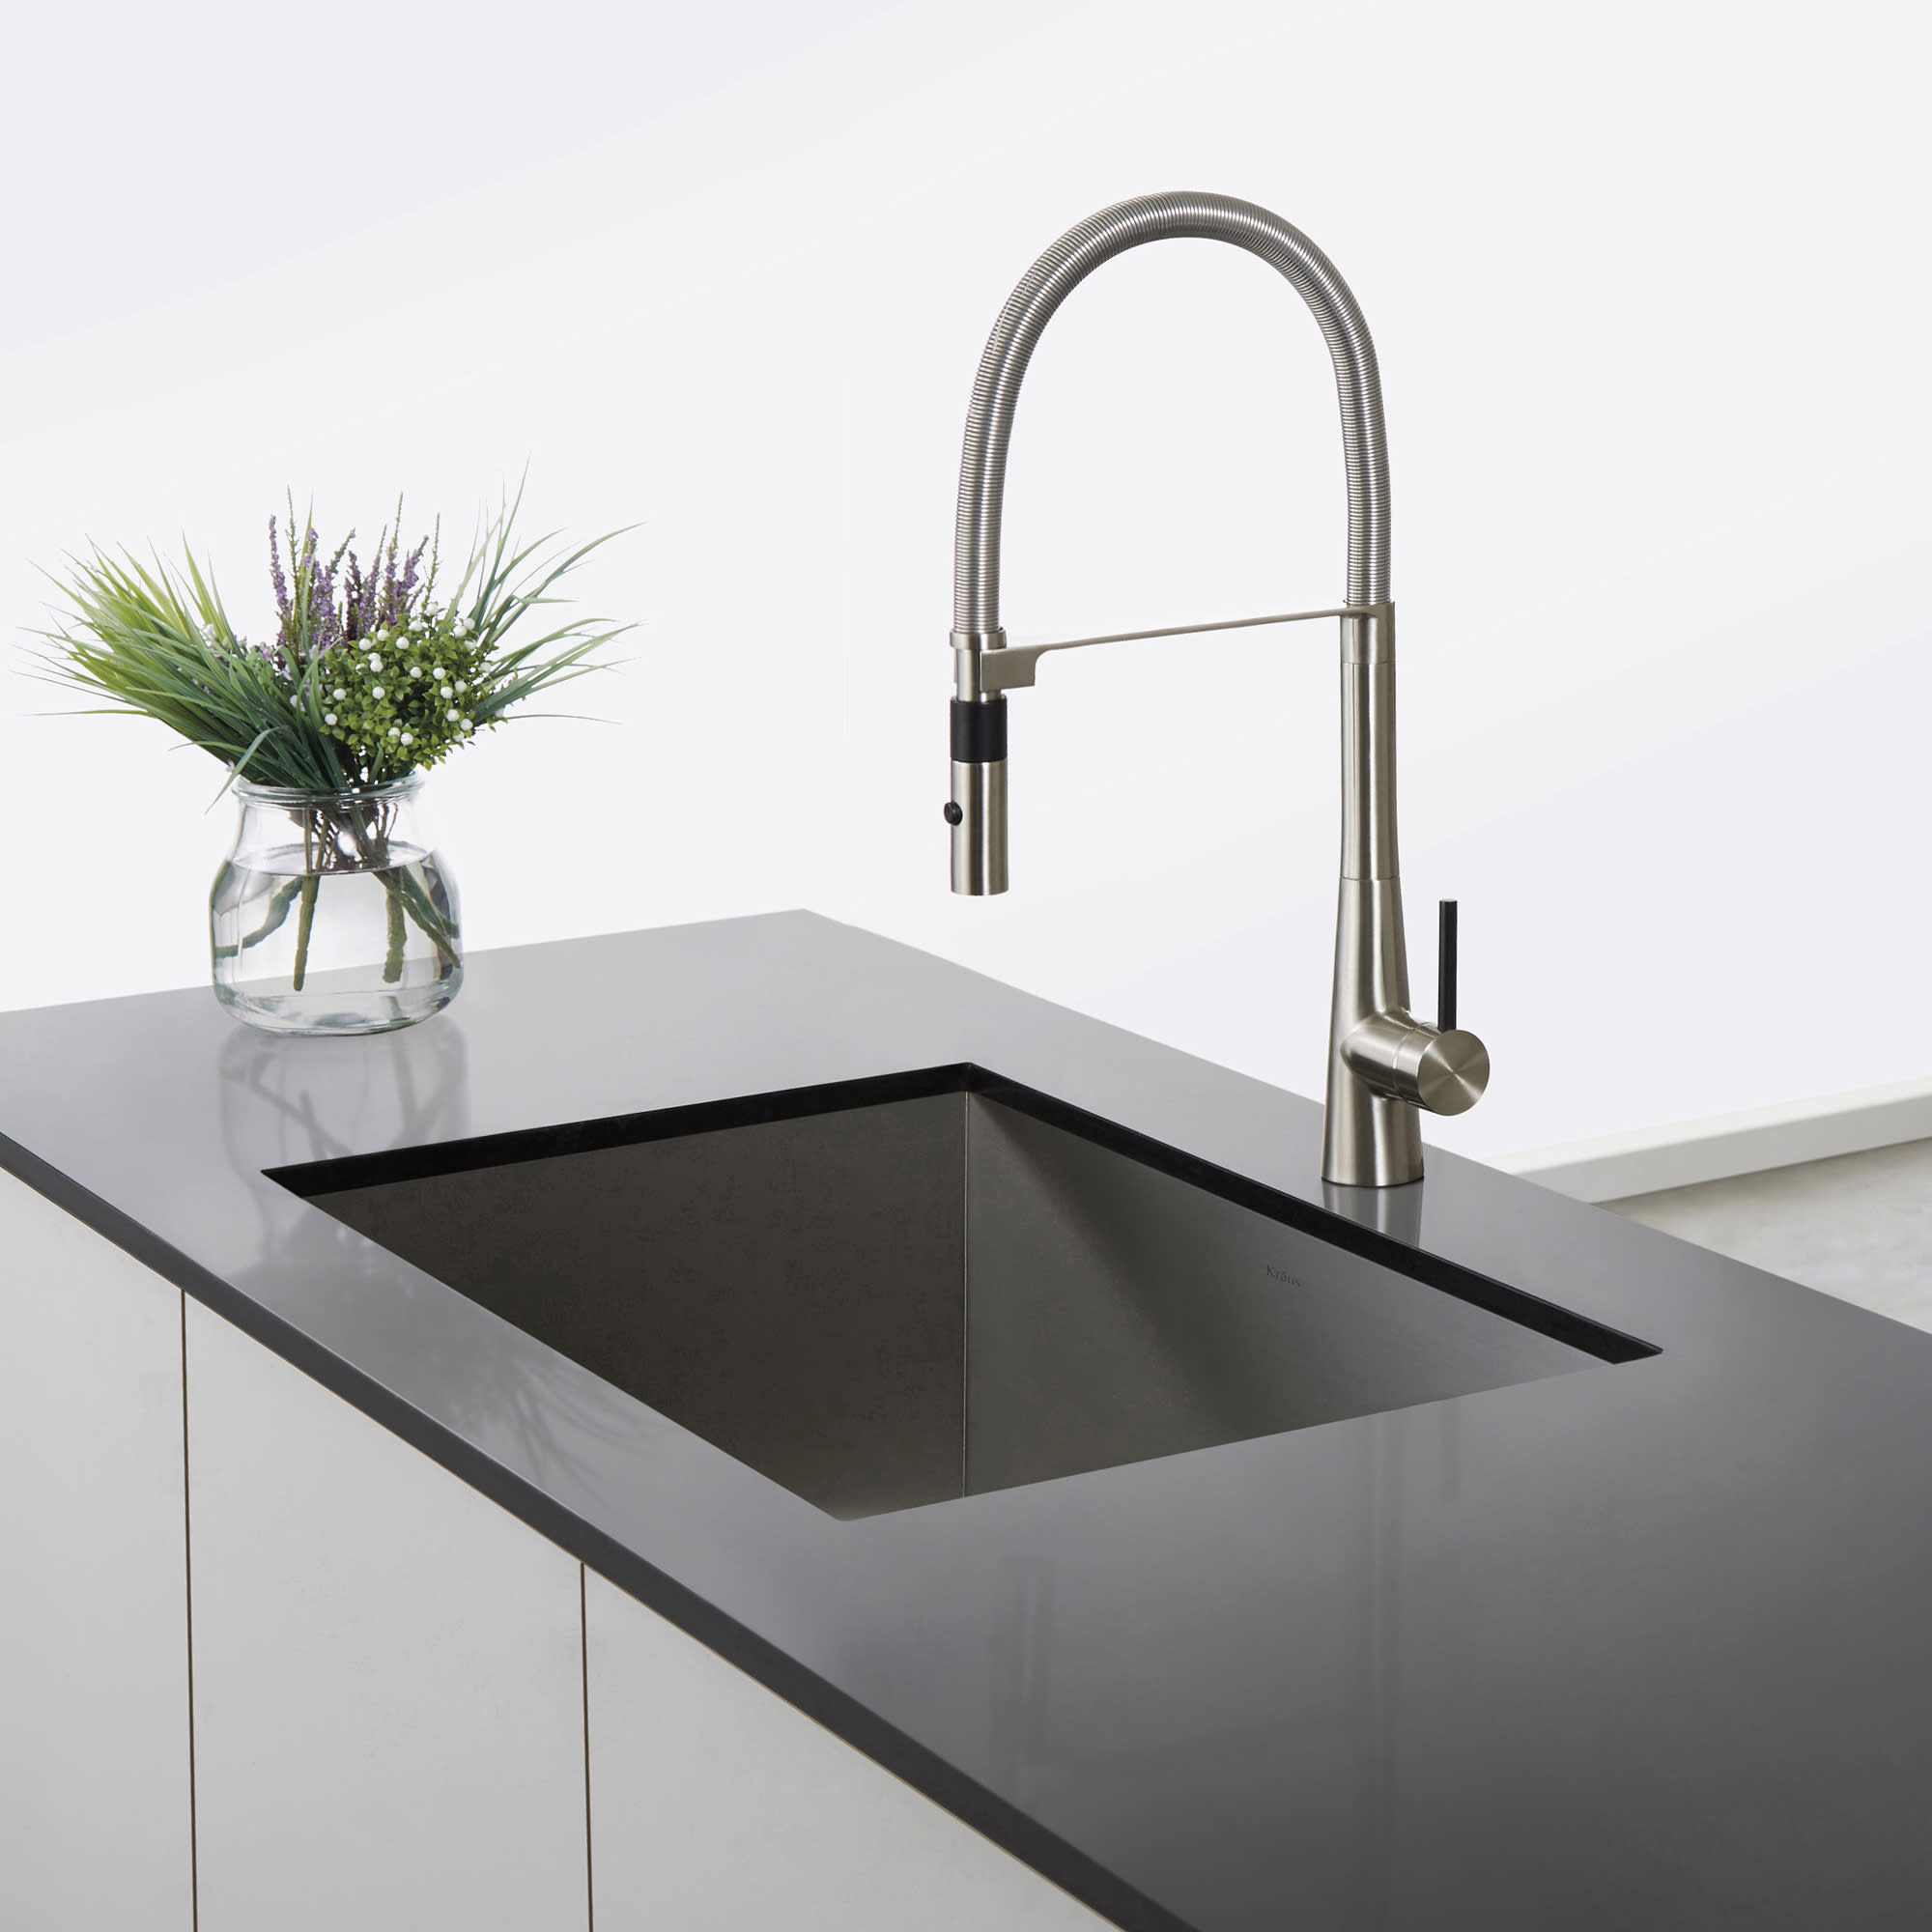 kraus spotlight commercial kitchen faucet Kraus Crespo Series Commercial Kitchen Faucet